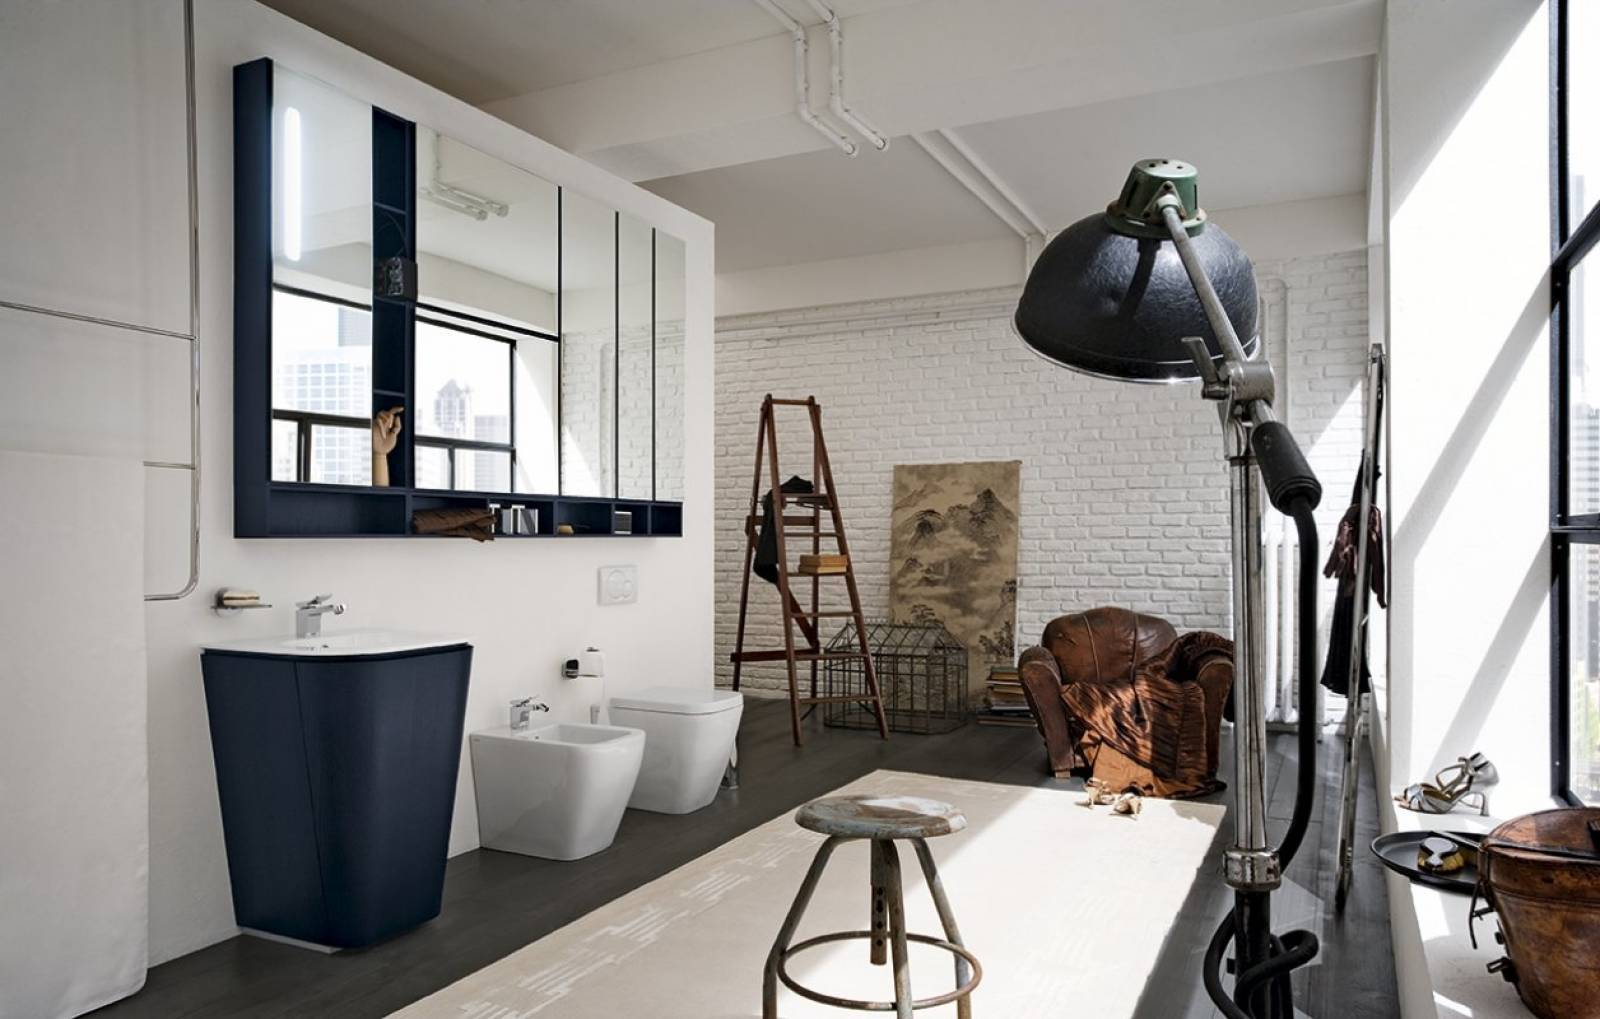 salle de bain style loft industriel montpellier carr d 39 eau. Black Bedroom Furniture Sets. Home Design Ideas